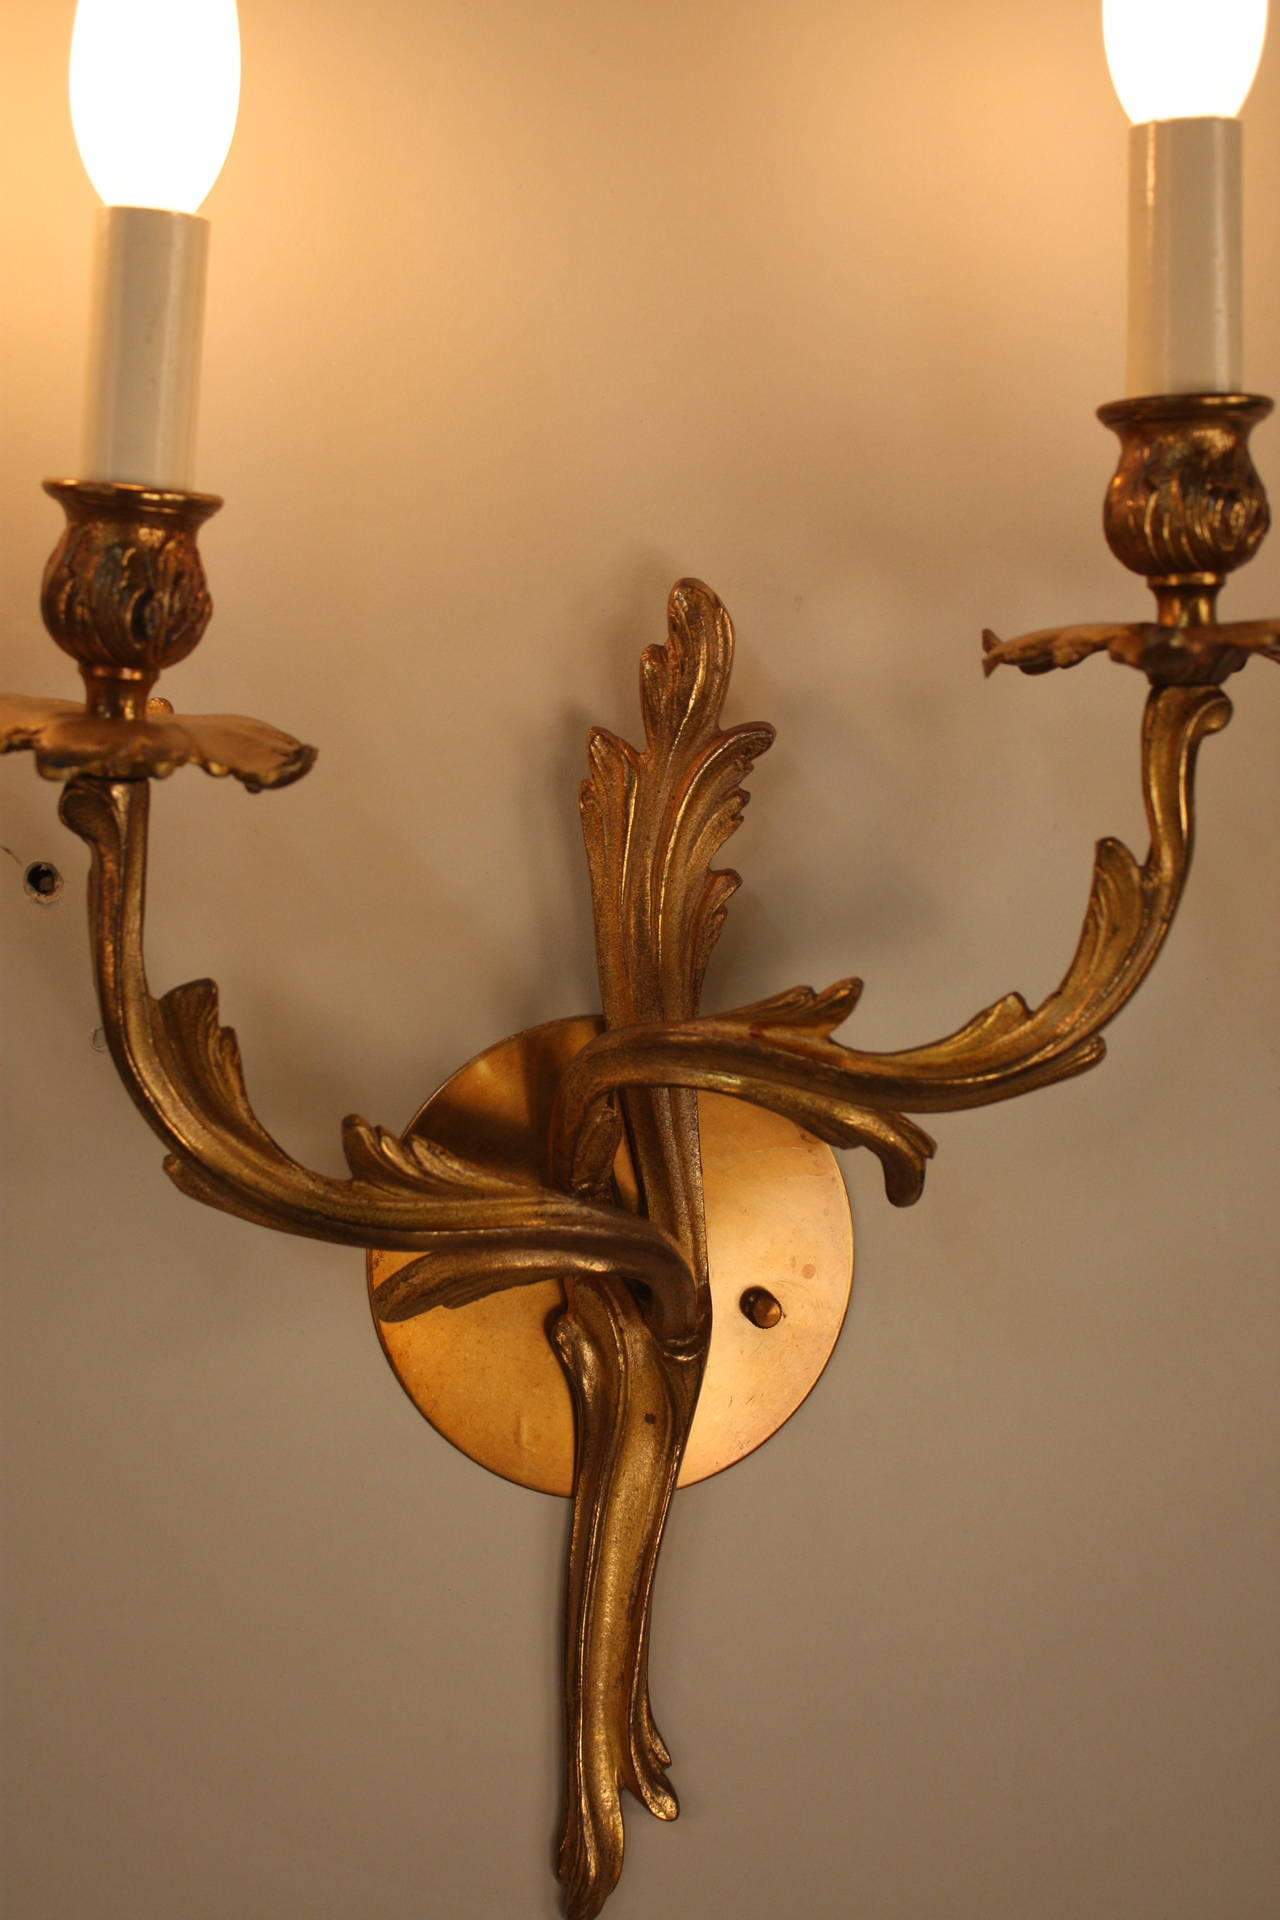 Pair Of 1930s Art Nouveau Wall Sconces At 1stdibs